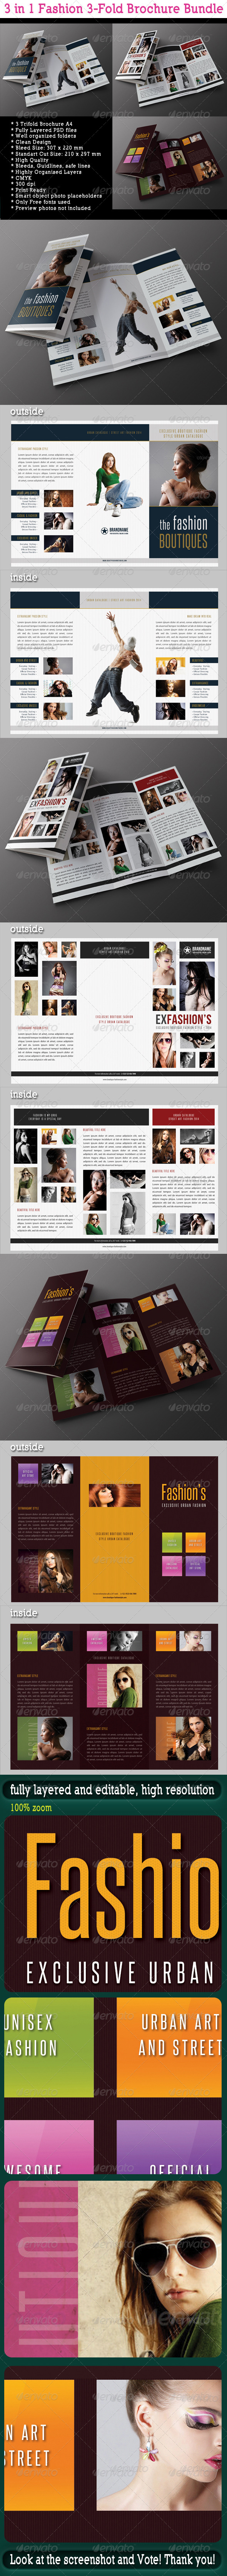 GraphicRiver 3 in 1 Fashion 3-Fold Brochure Bundle 06 7721214